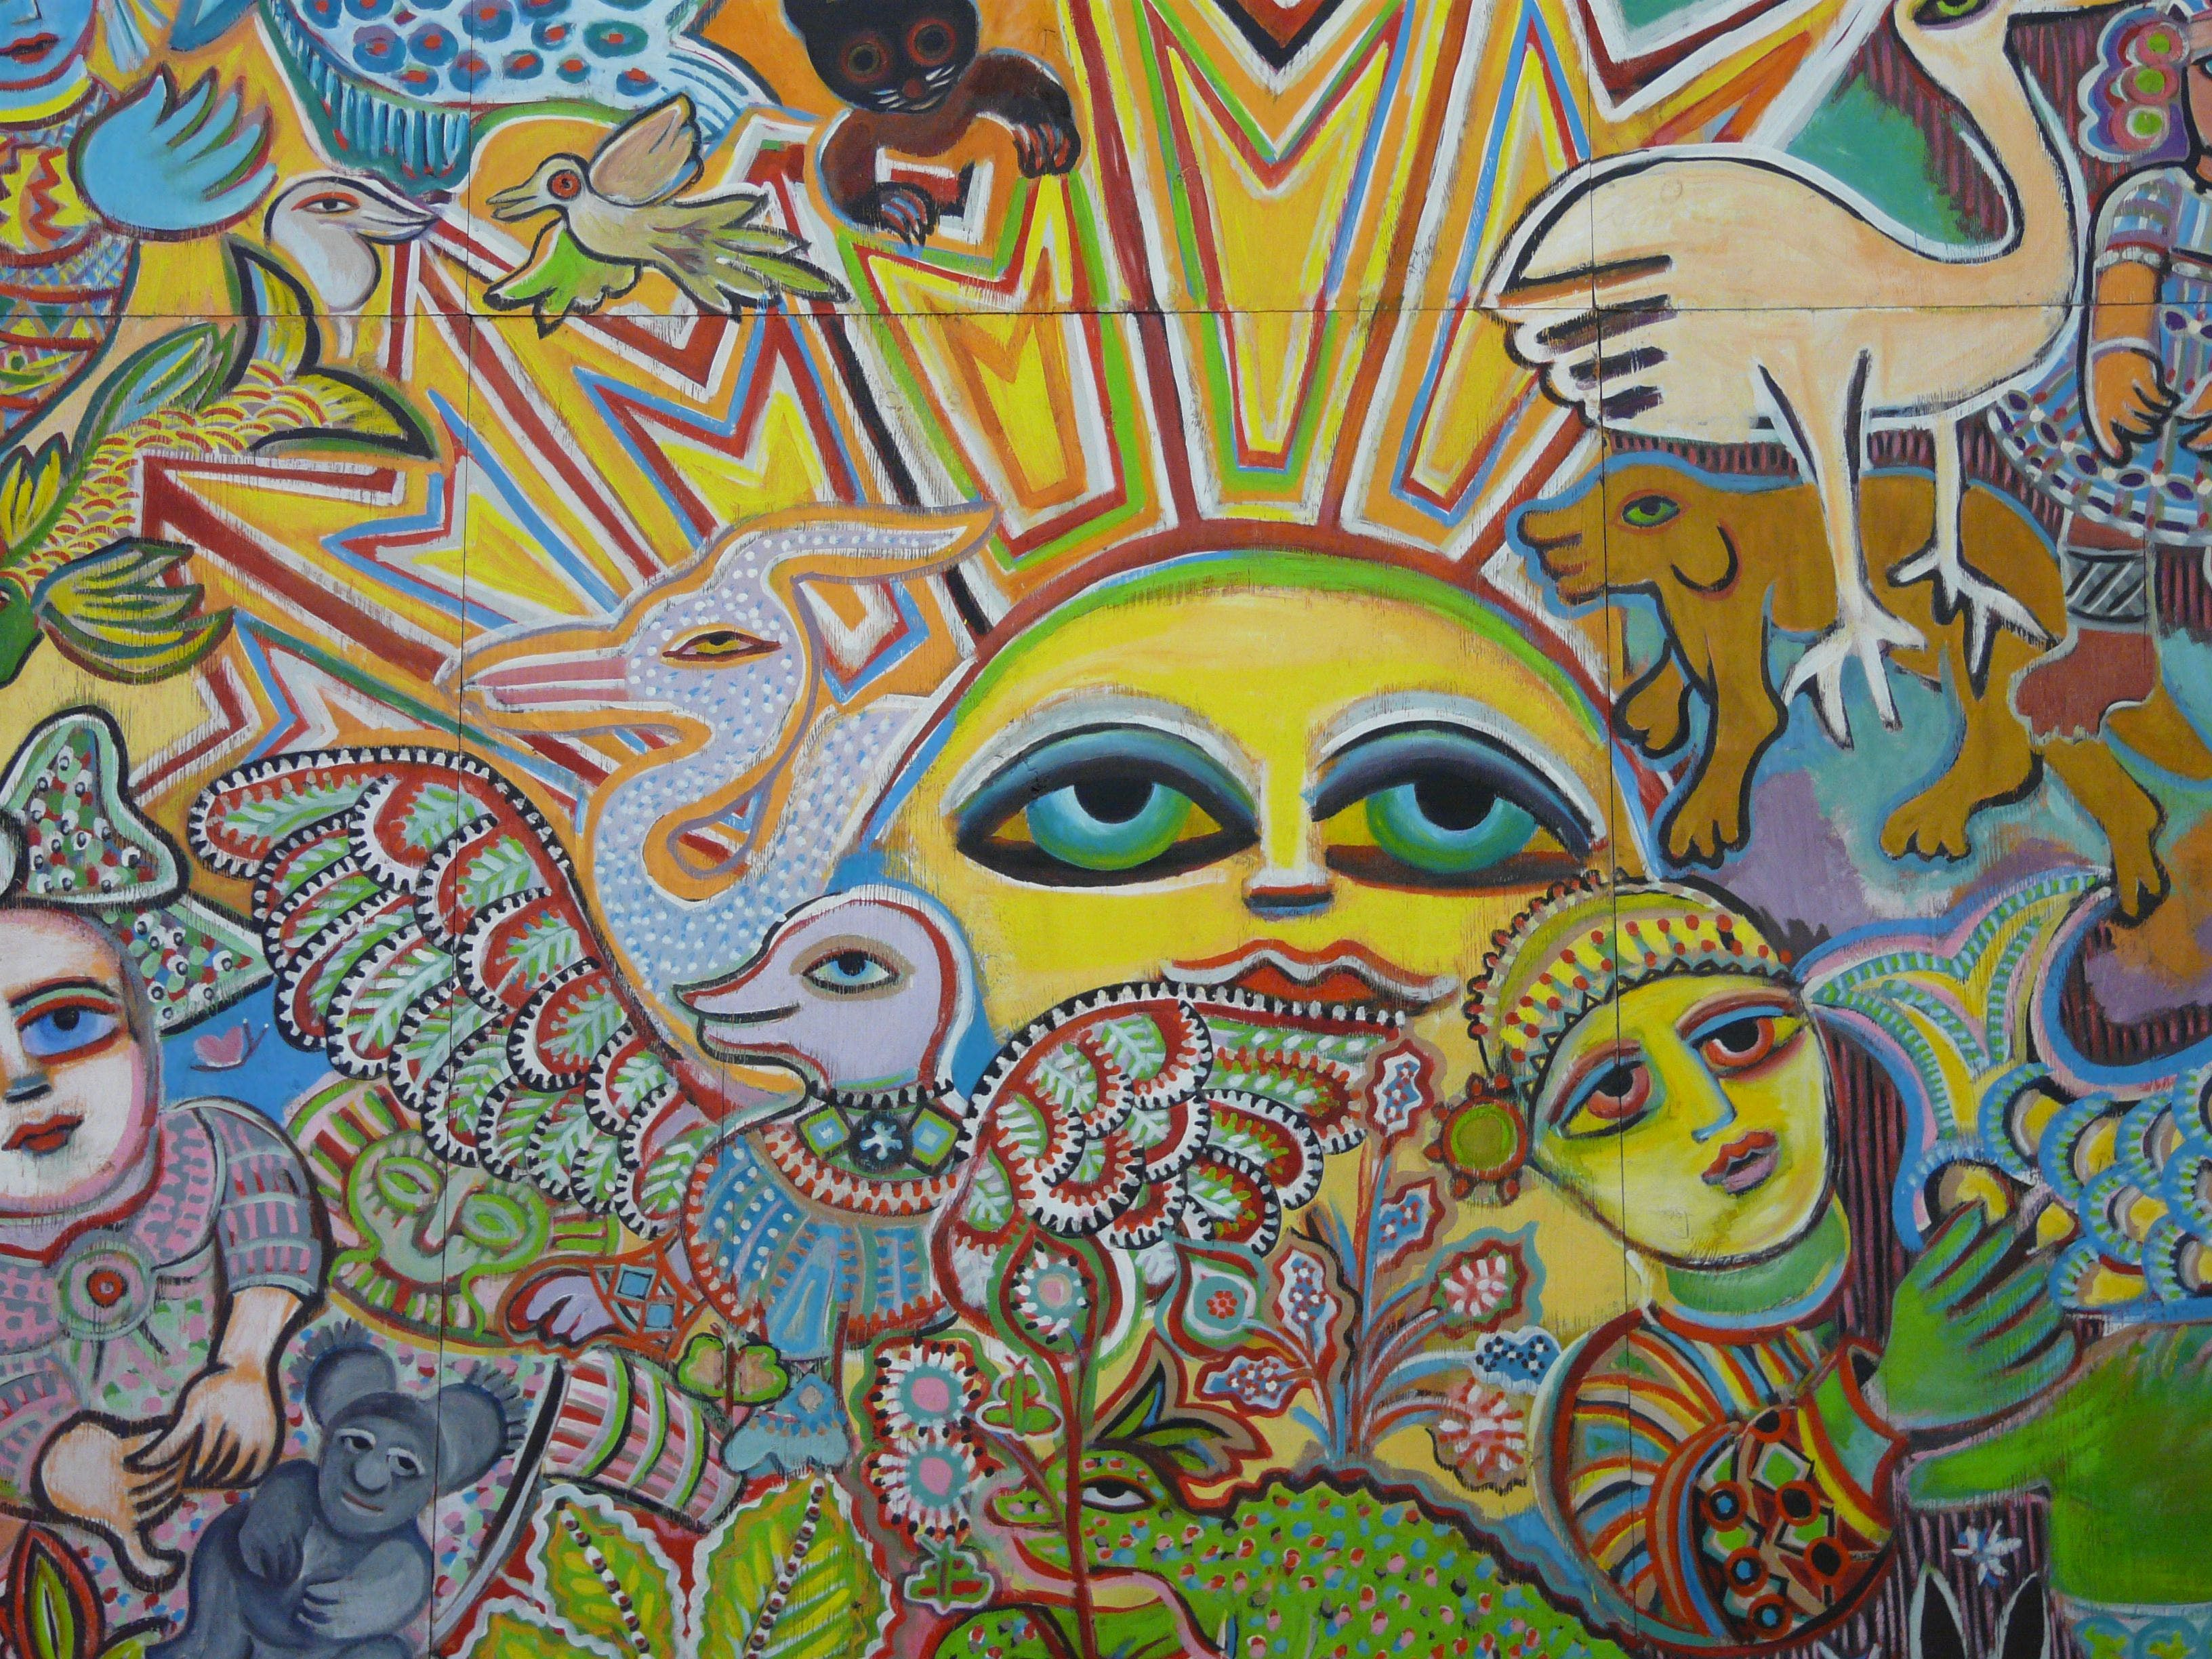 The Painting of Life by Mirka Mora - Townsville Tourism